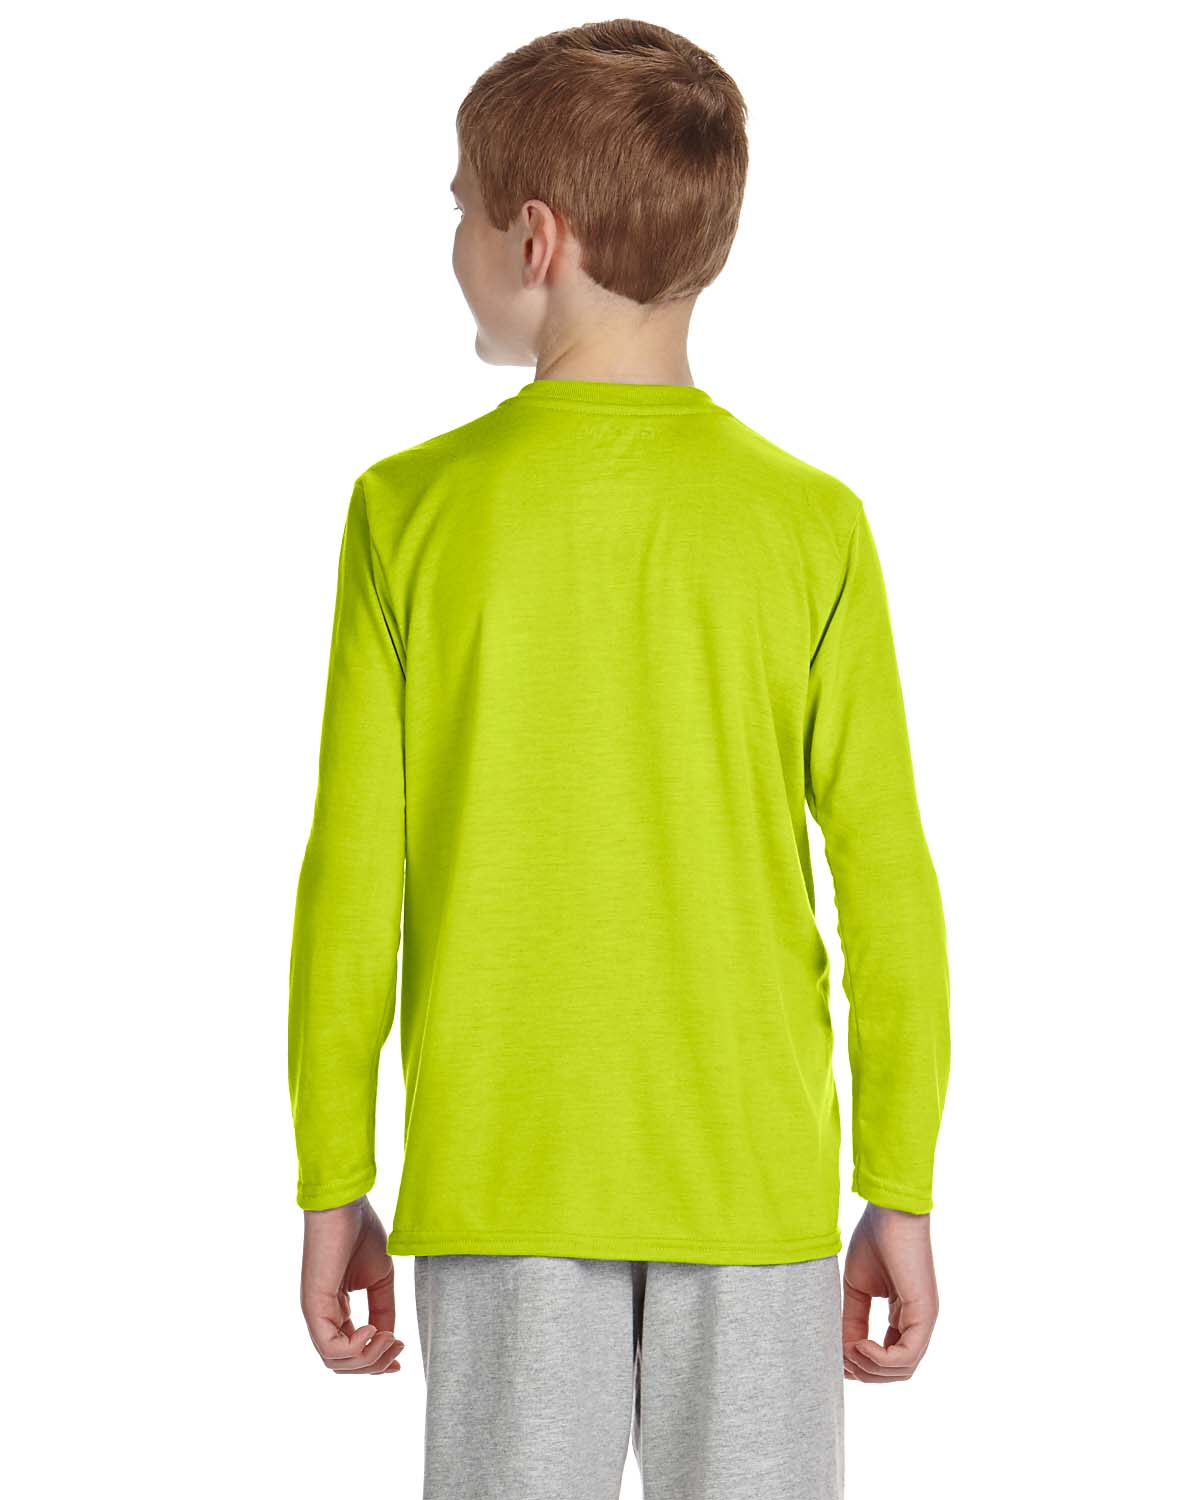 Yellow Long Sleeve T Shirt Youth Quality T Shirt Clearance